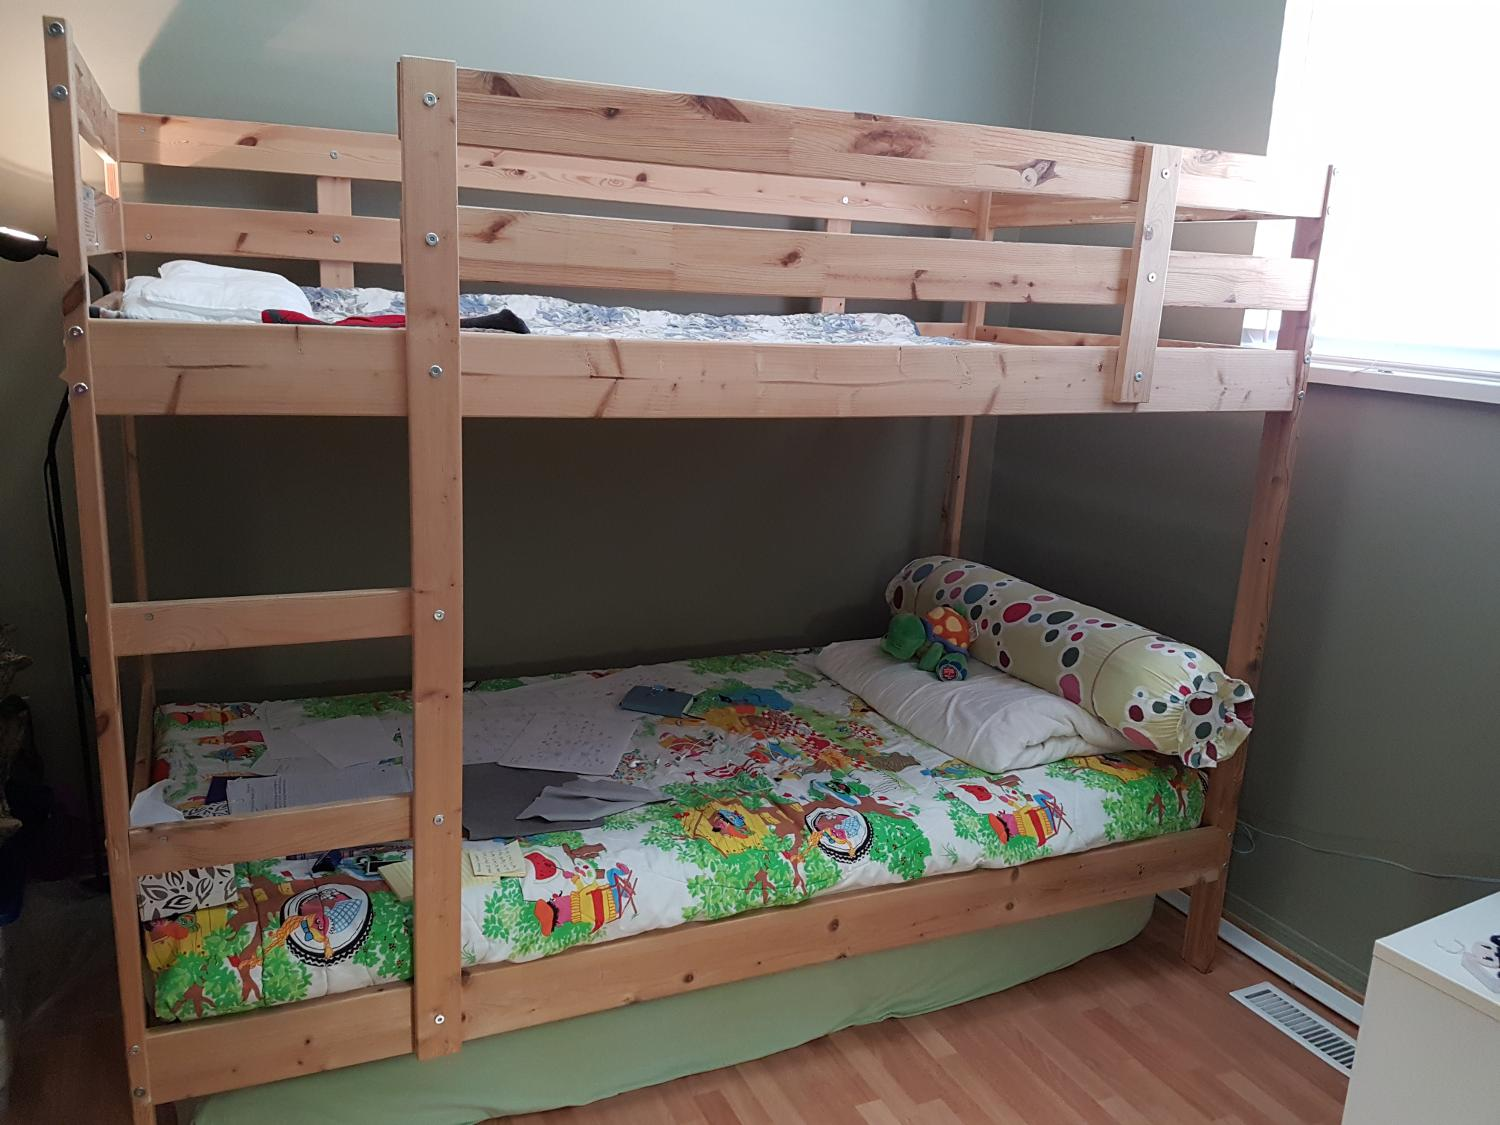 Find More Vguc Ikea Bunk Beds For Sale At Up To 90 Off